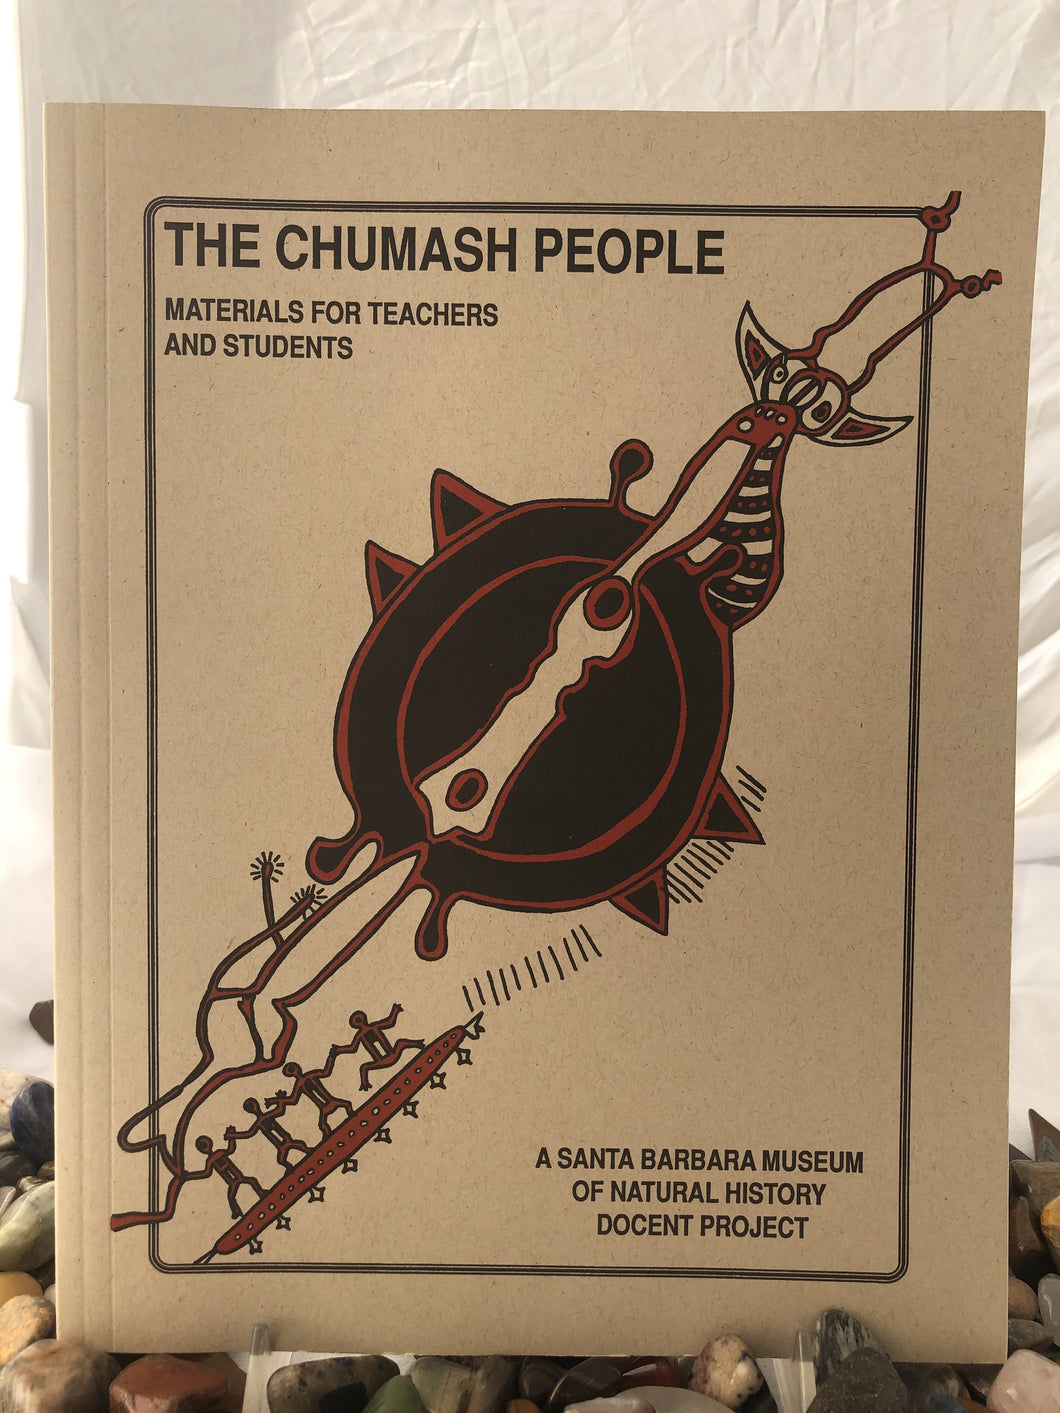 The Chumash People: Materials for Teachers and Students